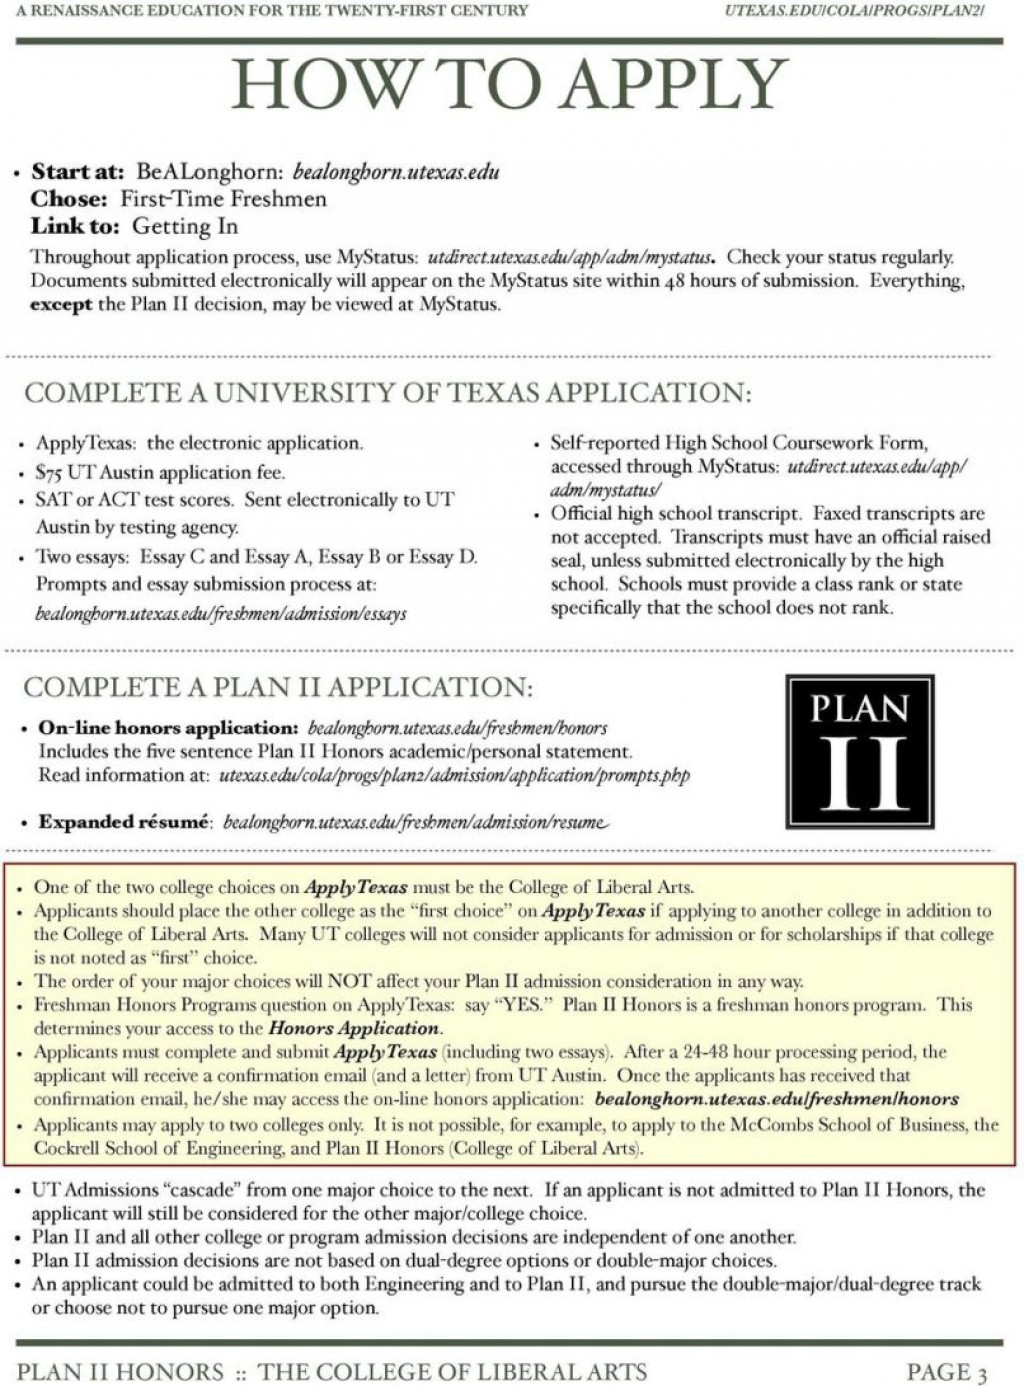 005 Apply Texas Essay Prompts Example Applytexas Poemdoc Or Topic Examples P Top A B And C Large